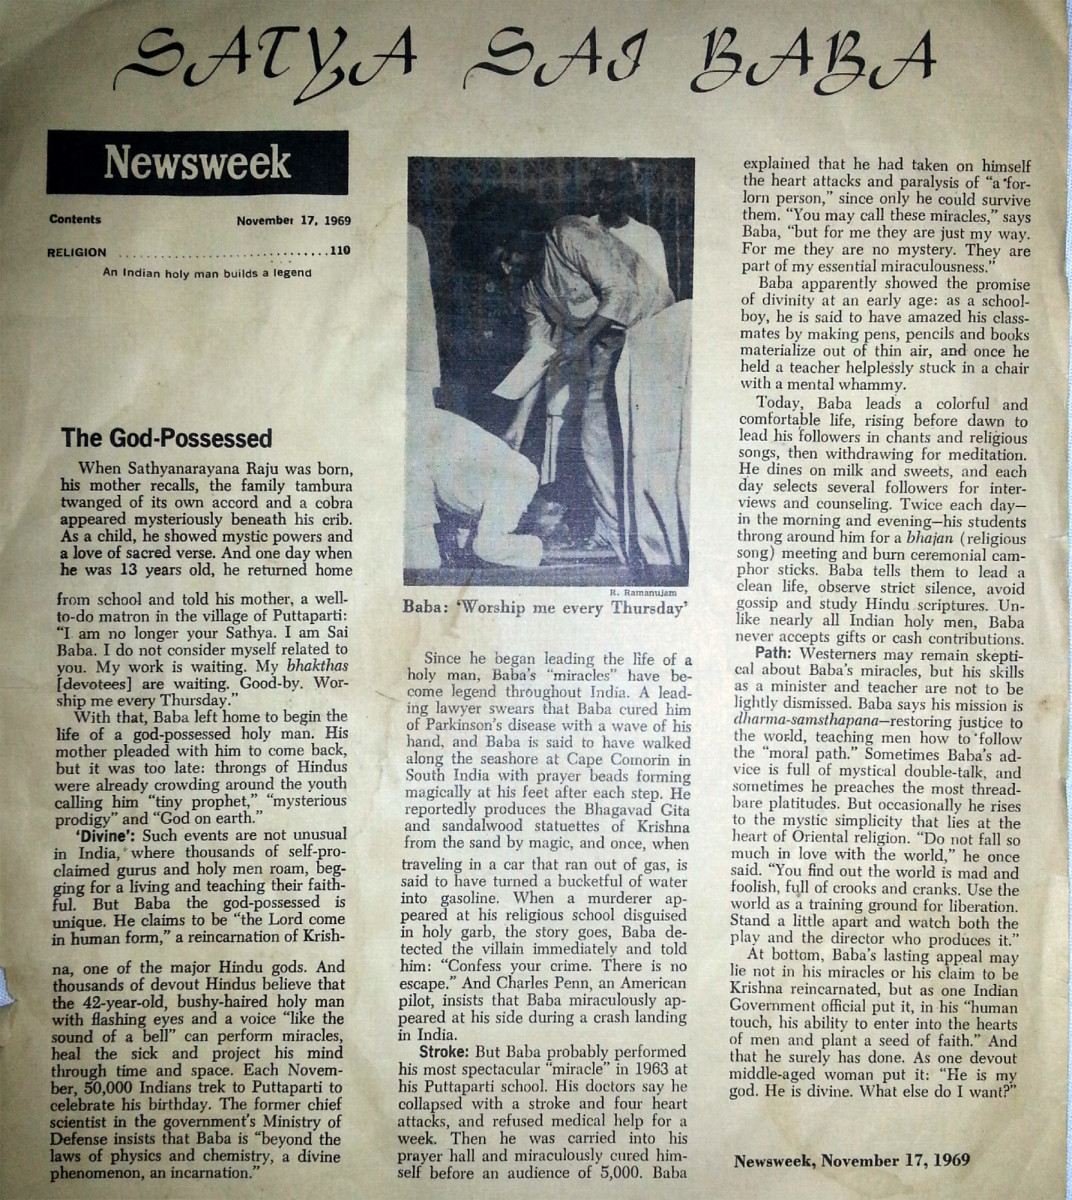 The article as it appeared in the Newsweek on November 17th, 1969